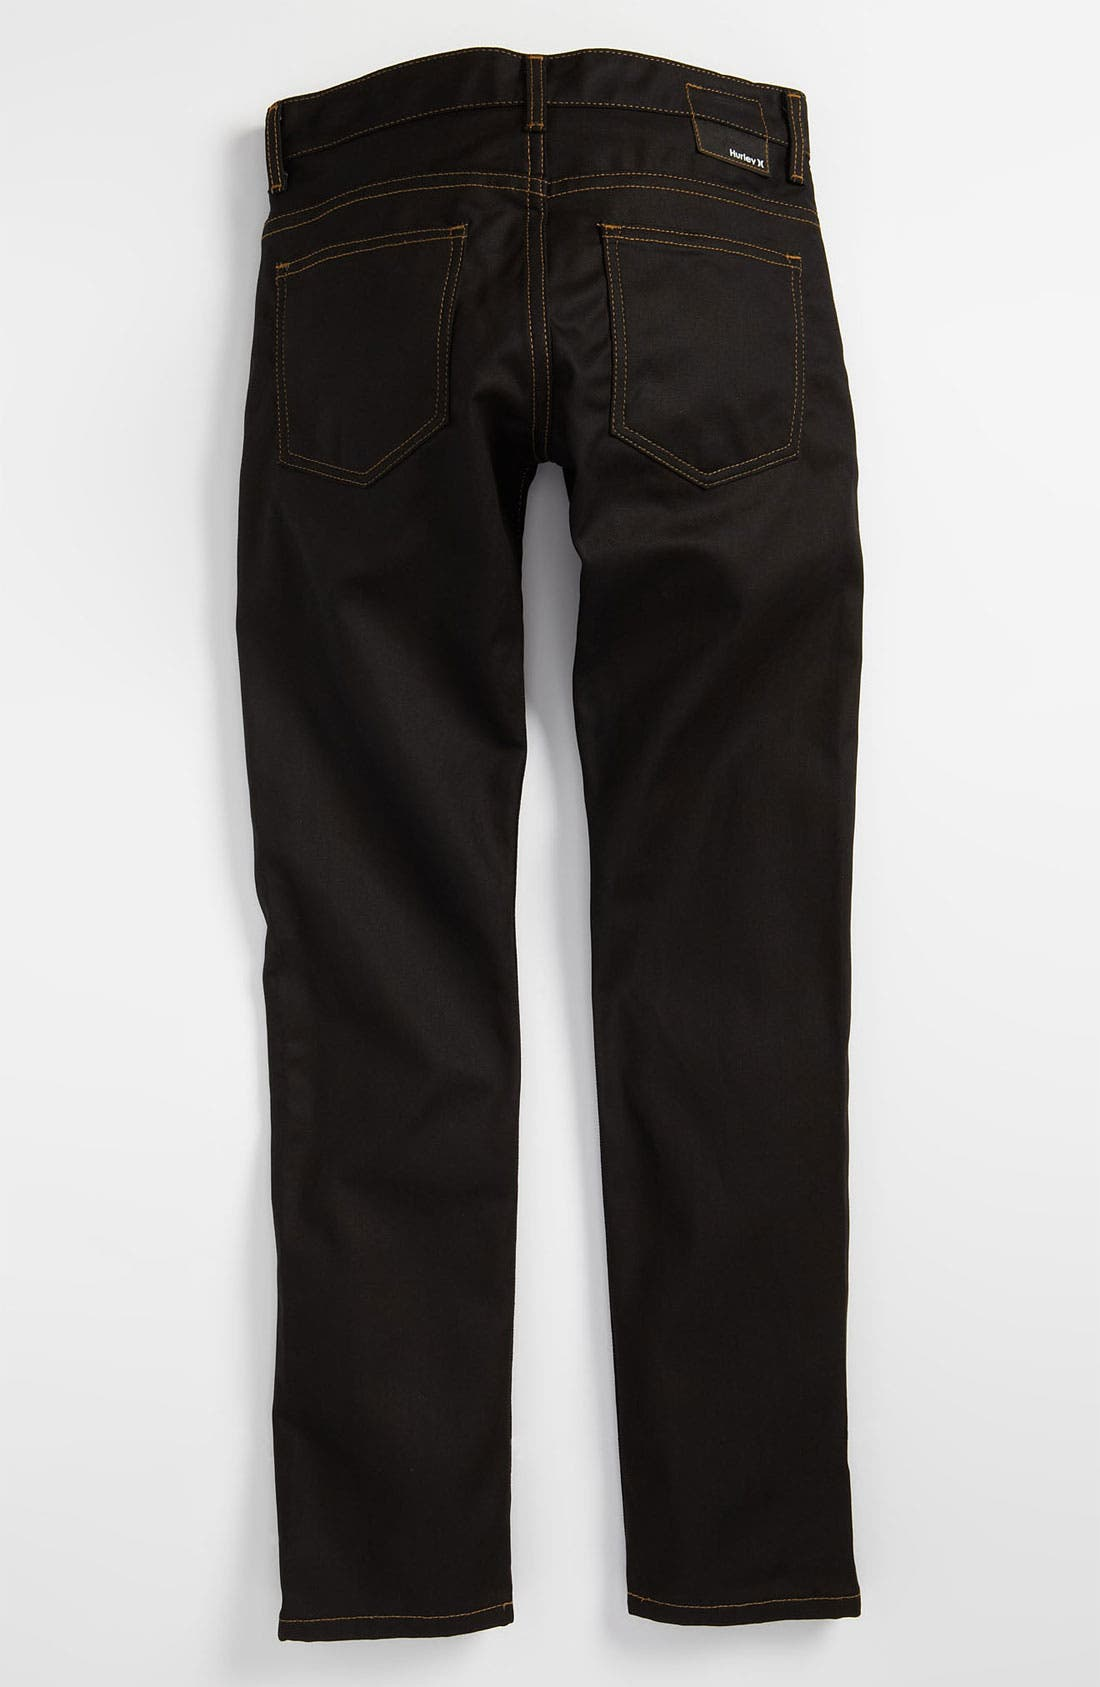 Alternate Image 1 Selected - Hurley '79' Jeans (Big Boys)